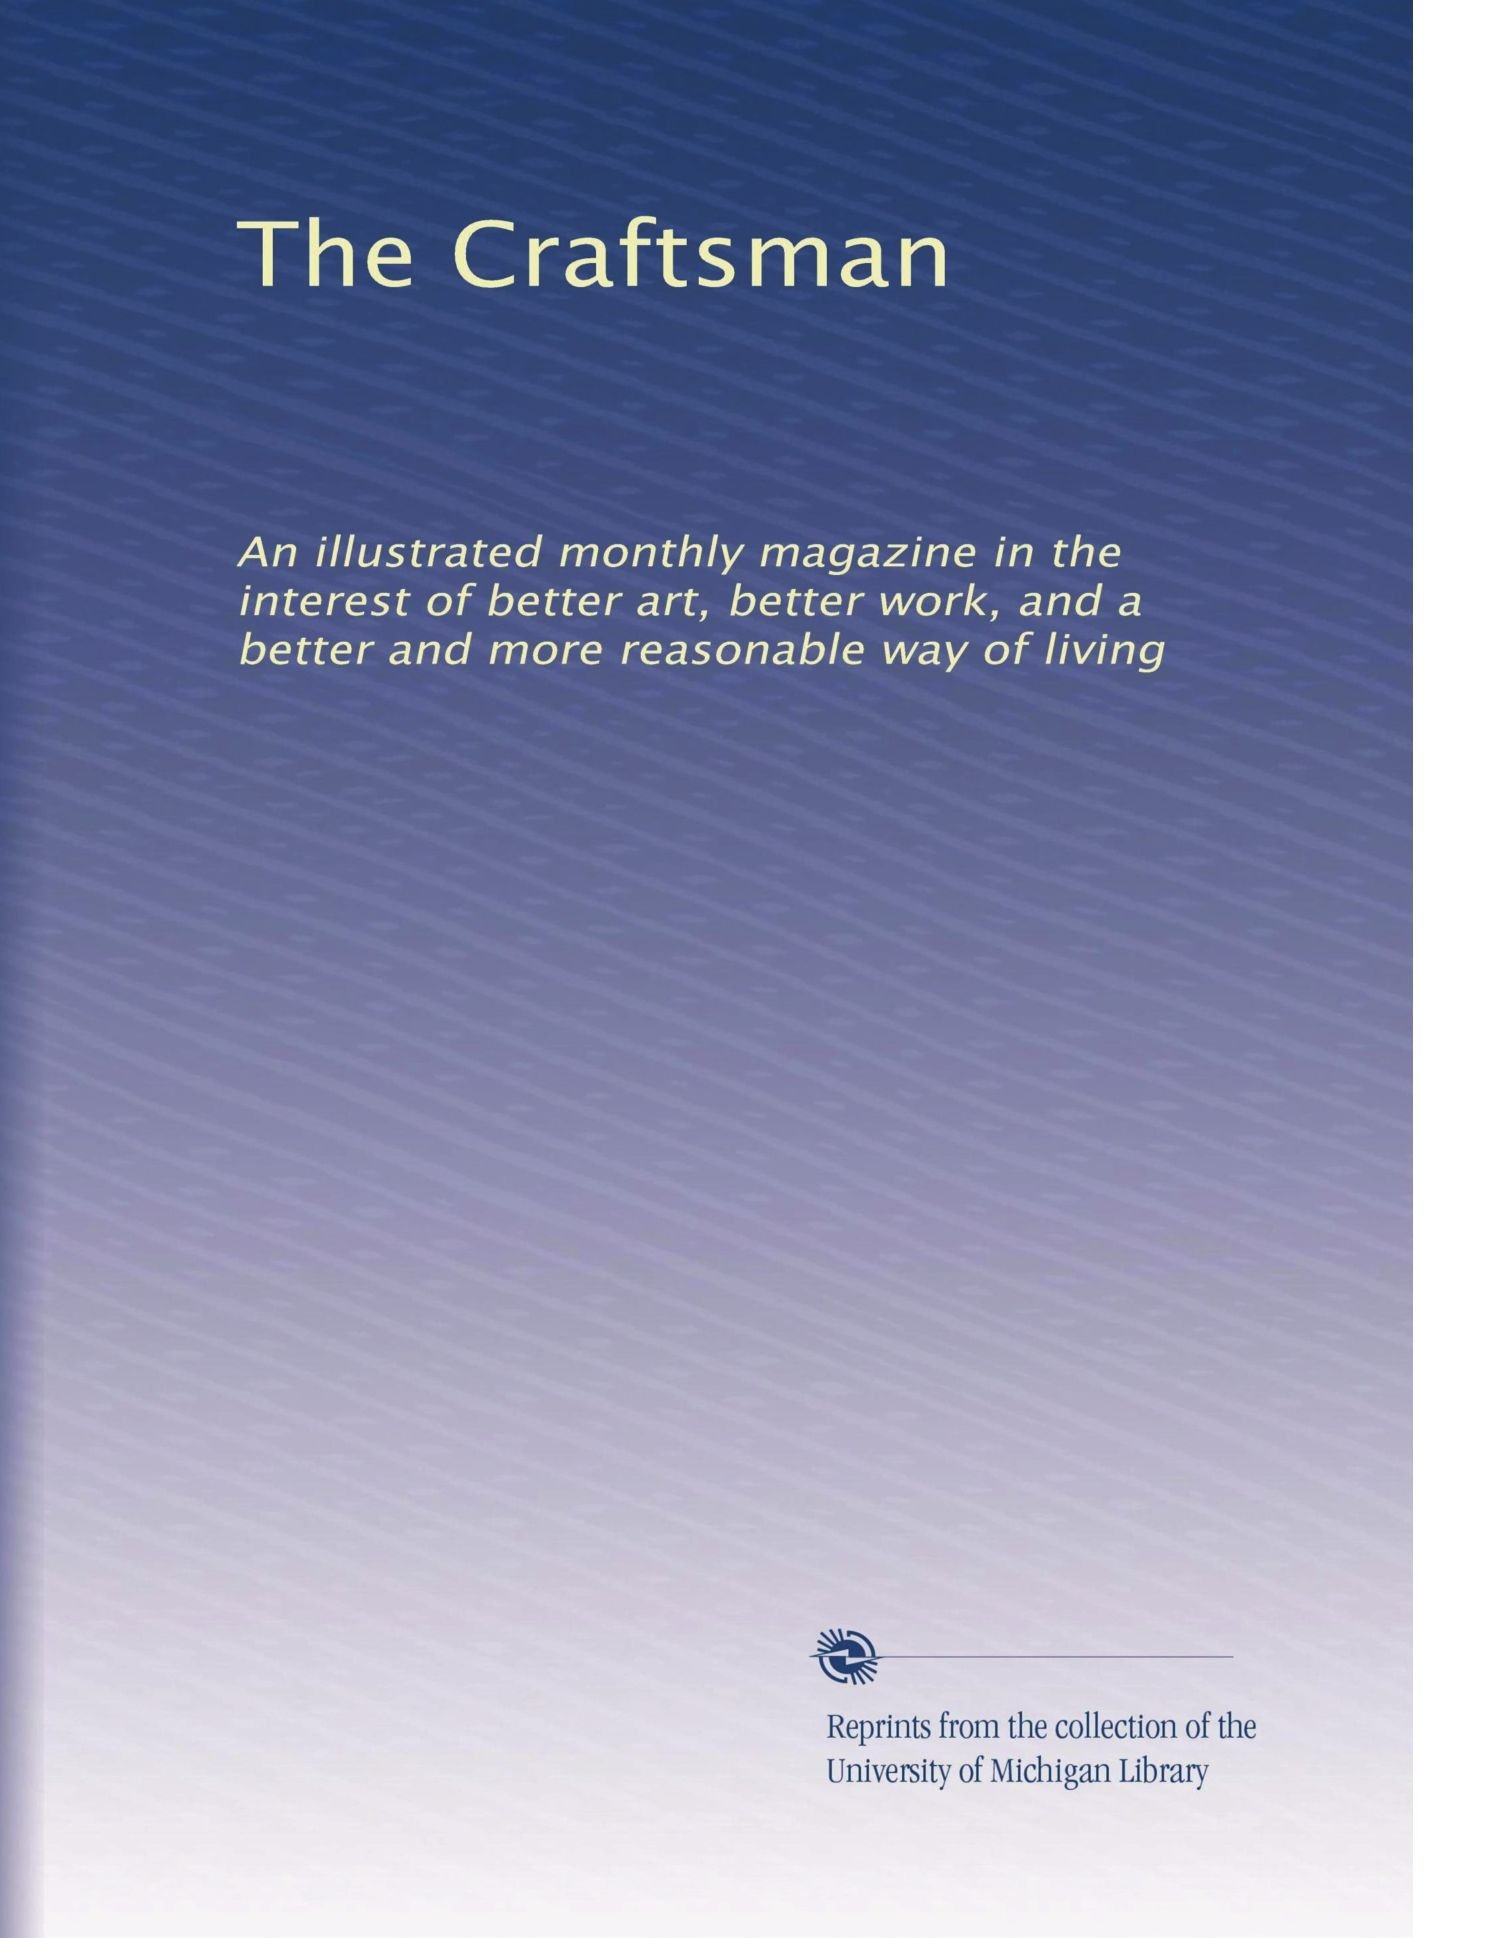 Download The Craftsman: An illustrated monthly magazine in the interest of better art, better work, and a better and more reasonable way of living (Volume 9) ebook